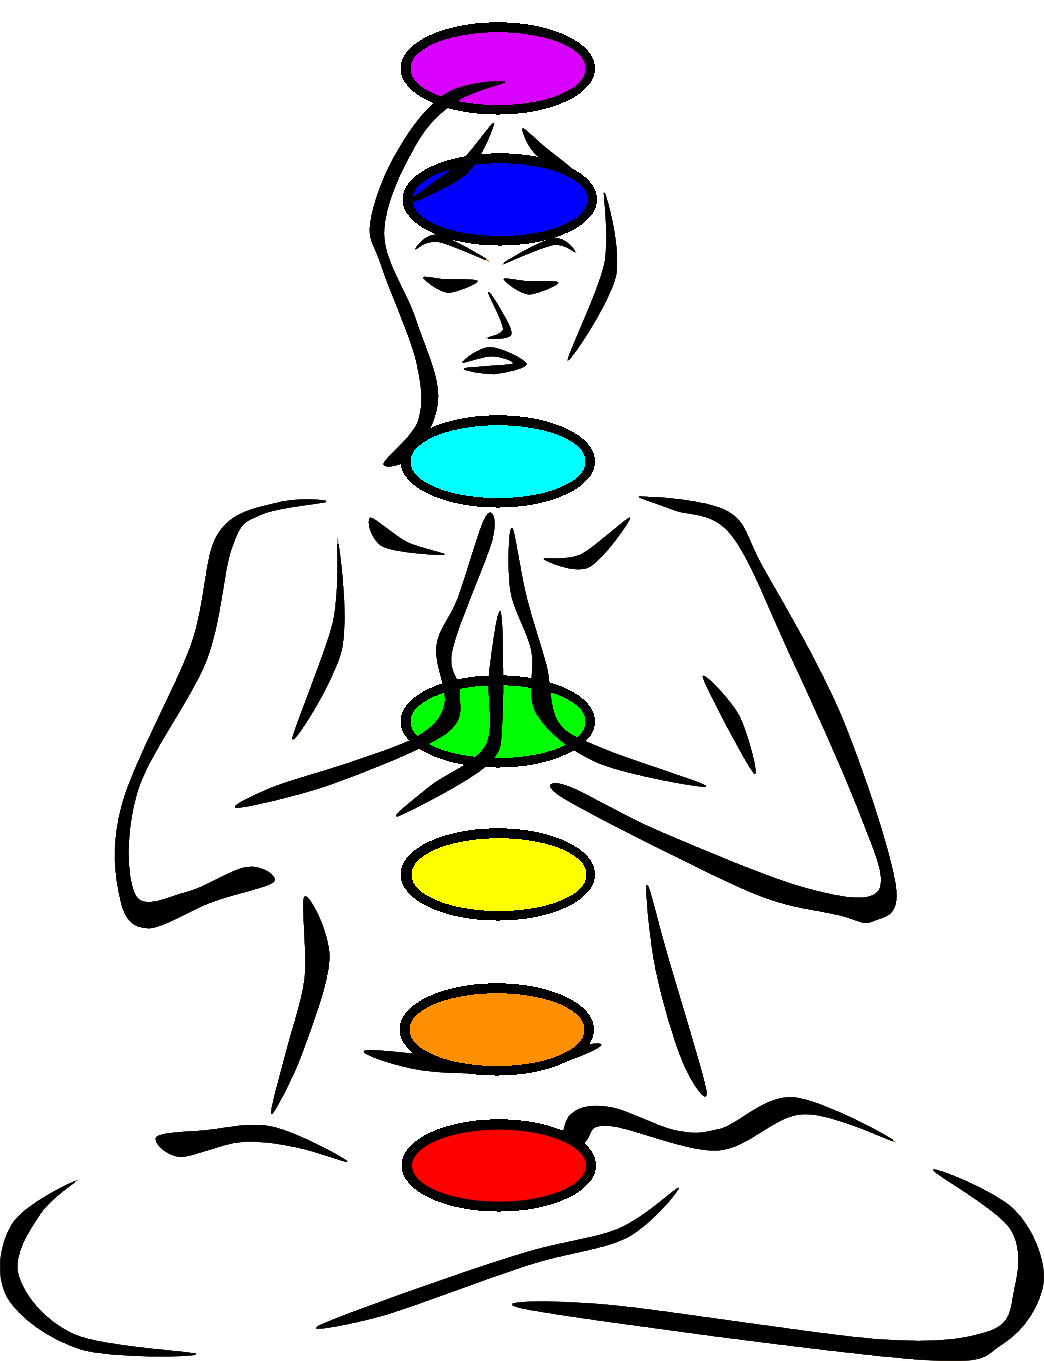 7 chakras and their location in the human body